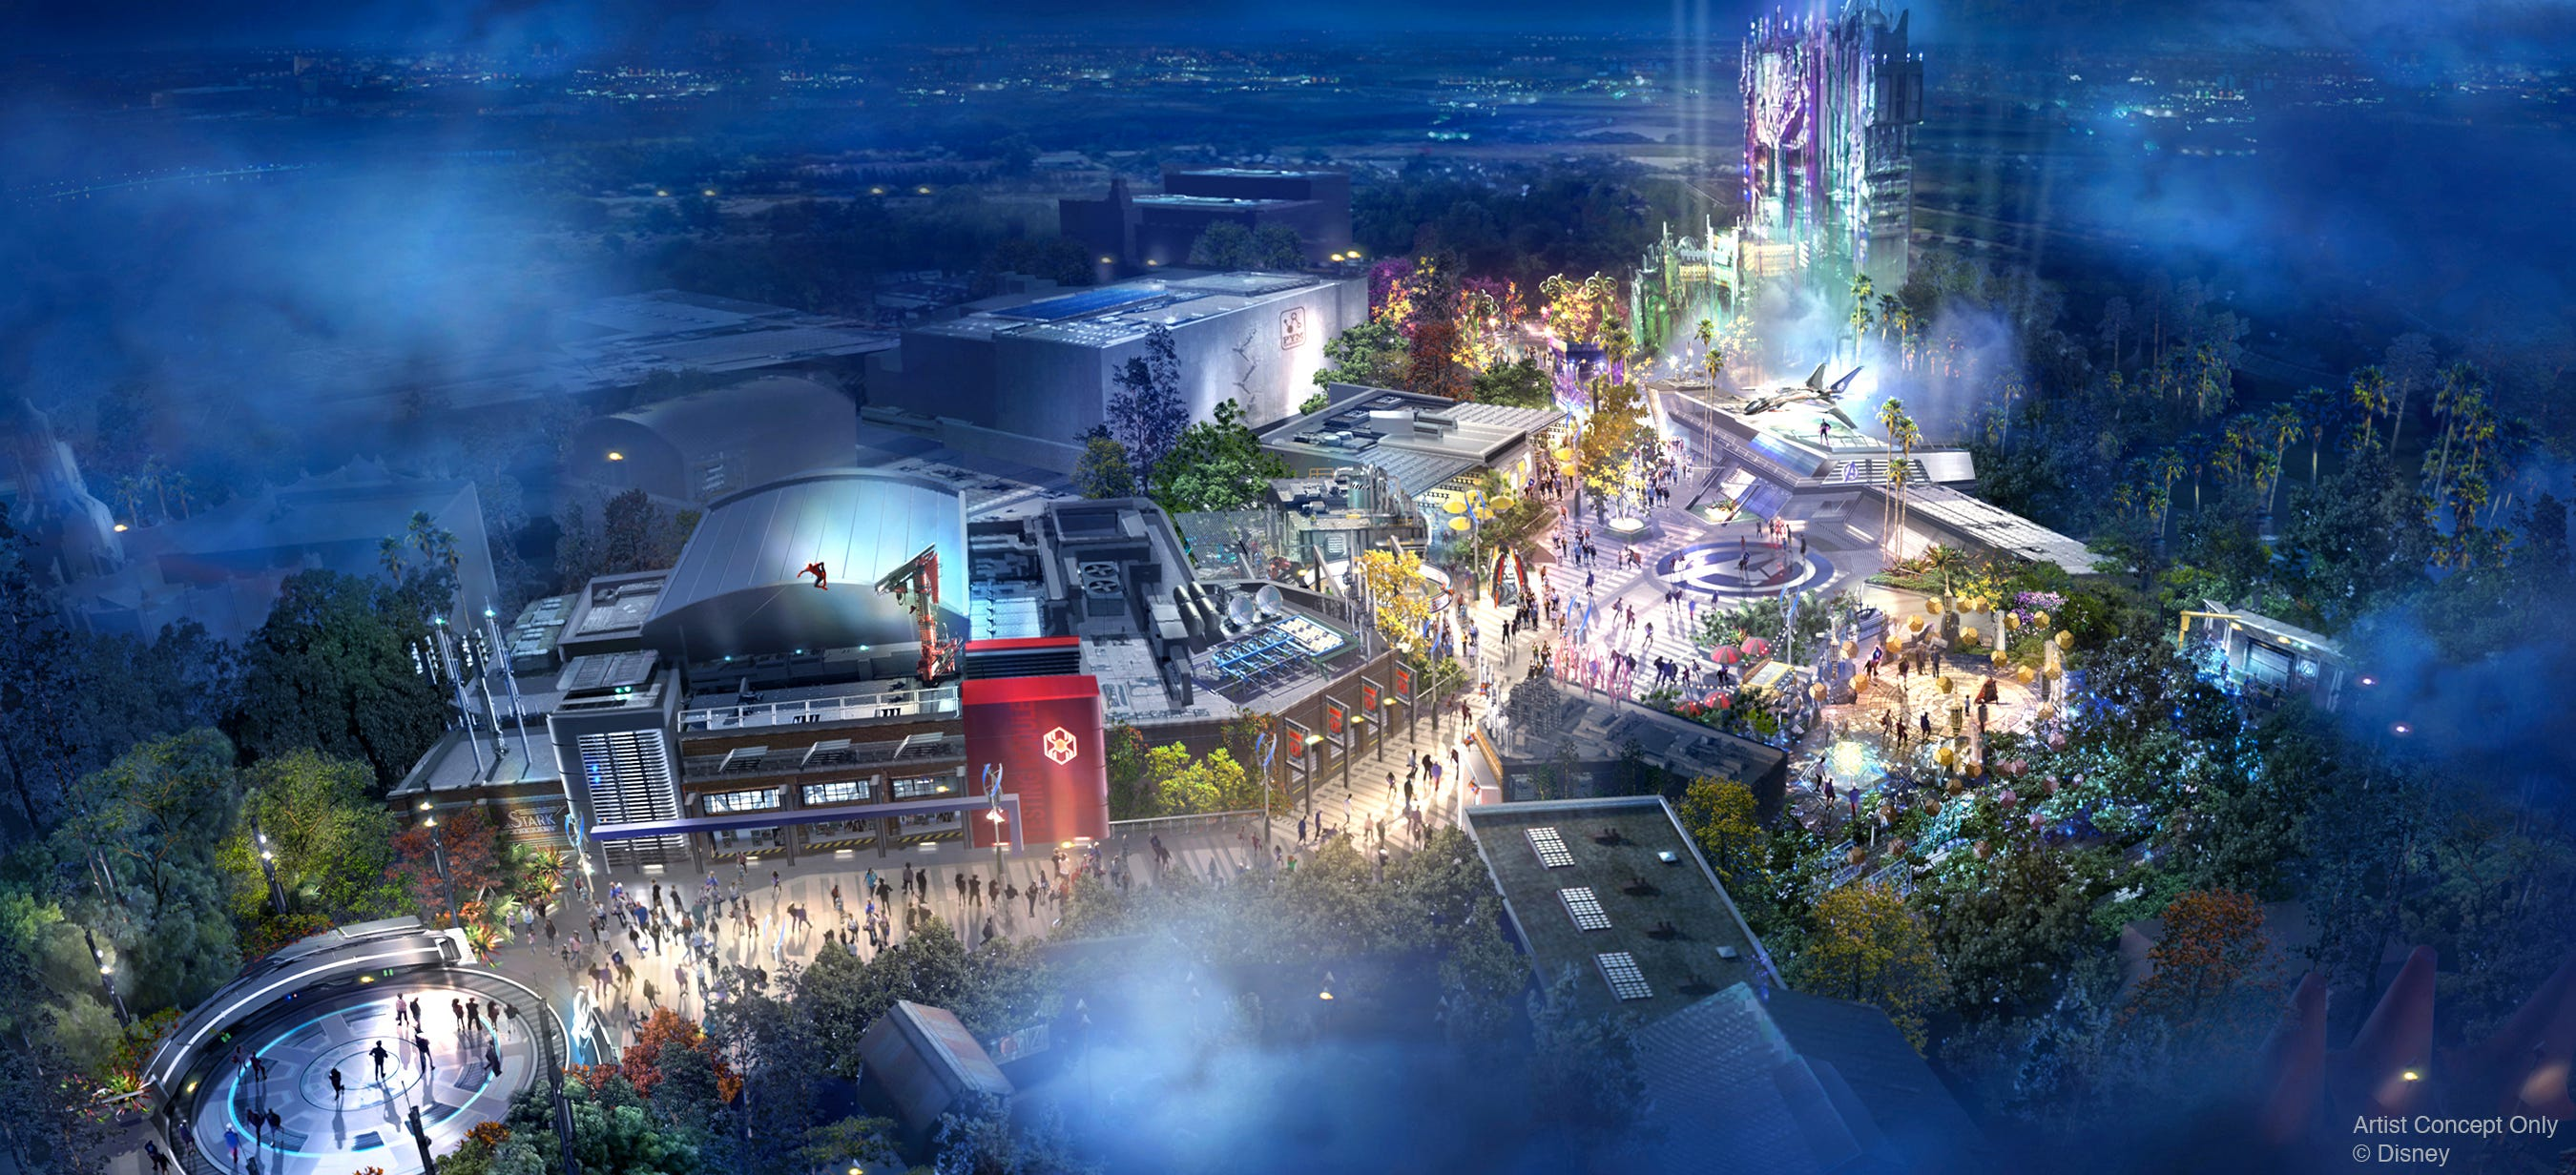 What's coming to Disney World, Disneyland in 2021 and beyond?